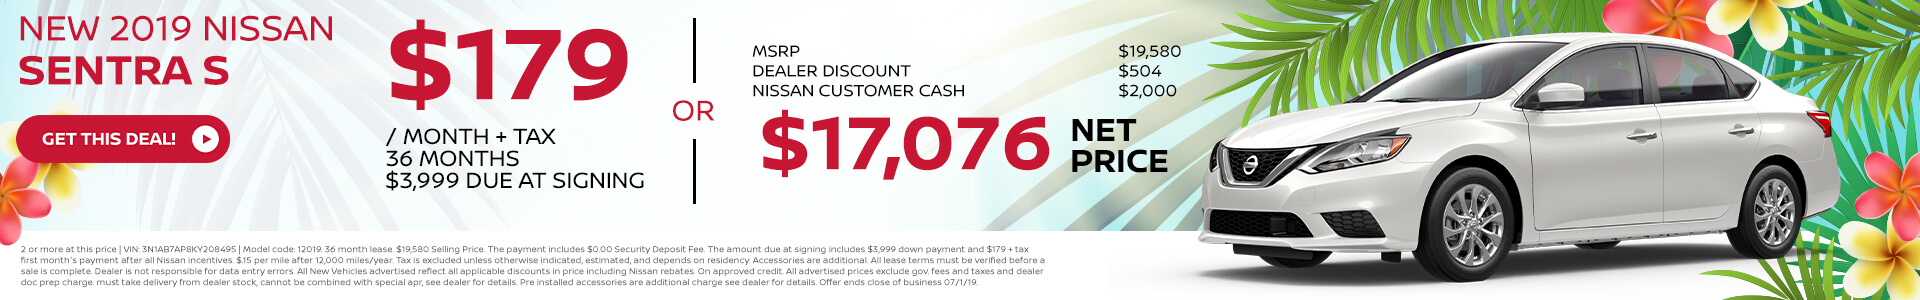 2019 Nissan Sentra Lease for $179